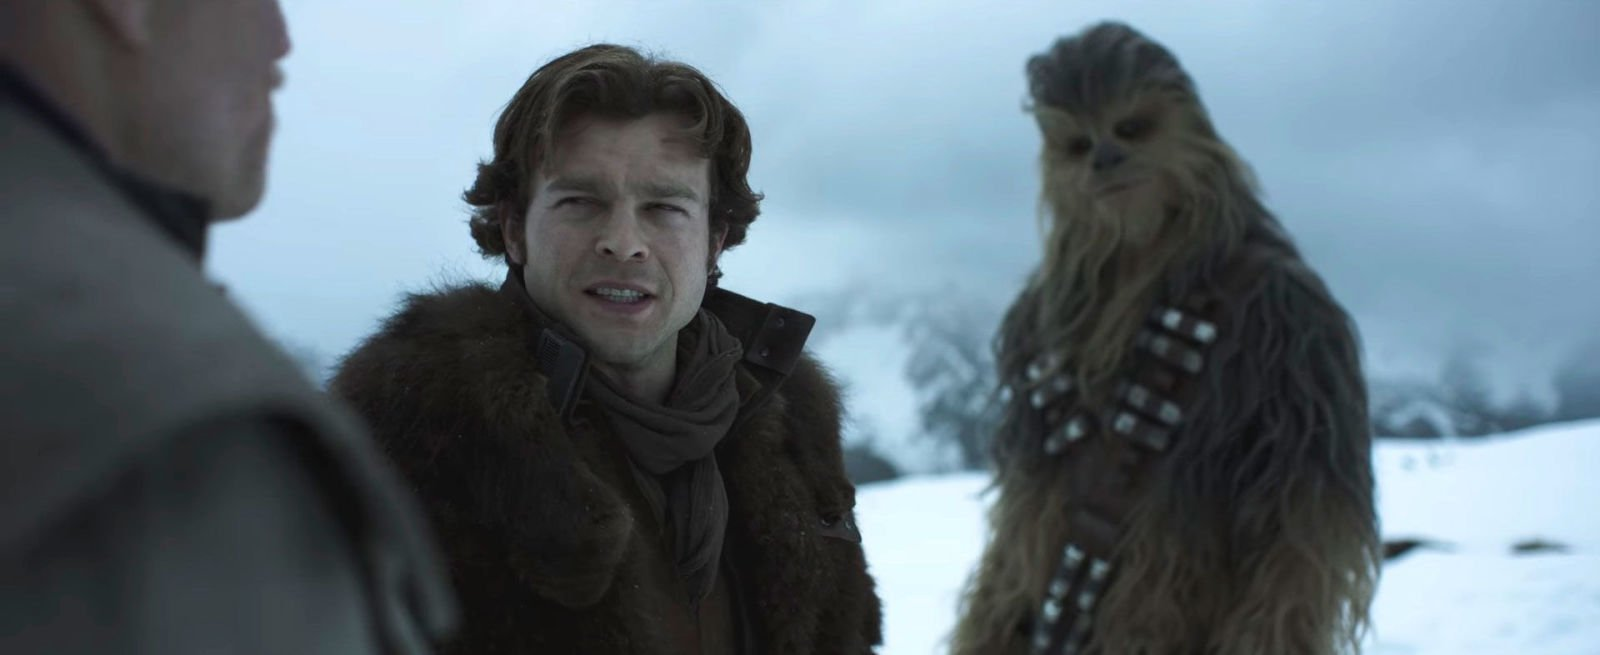 Is Star Wars putting all of its spin-offs on hold because Solo bombed?